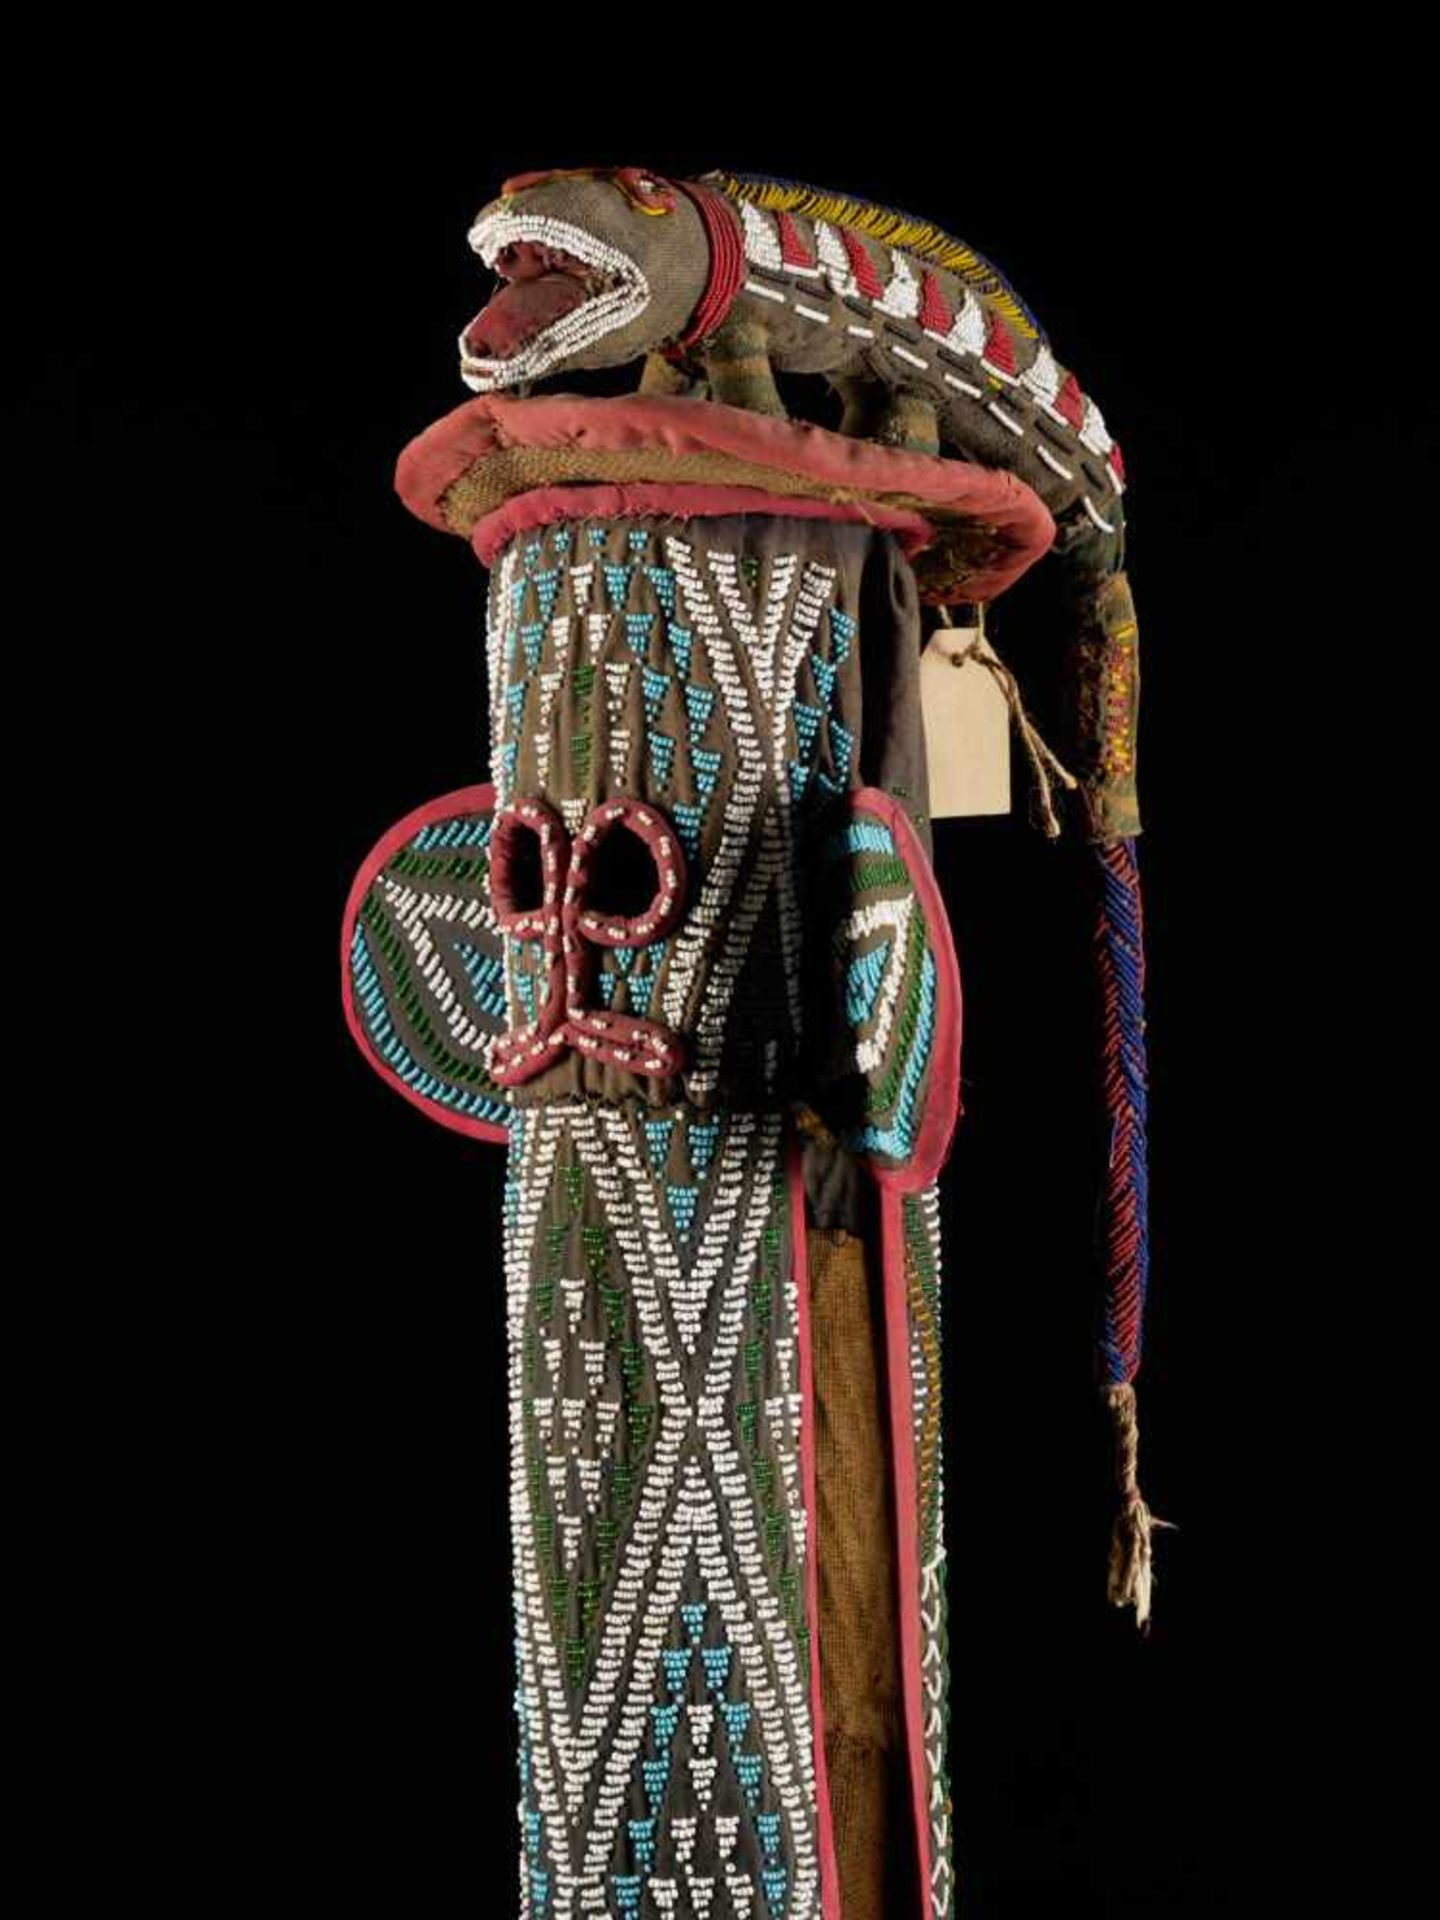 Beaded Kuosi Elephant Mask Topped With Leopard Figure - Tribal ArtThis elephant mask is - Bild 6 aus 15